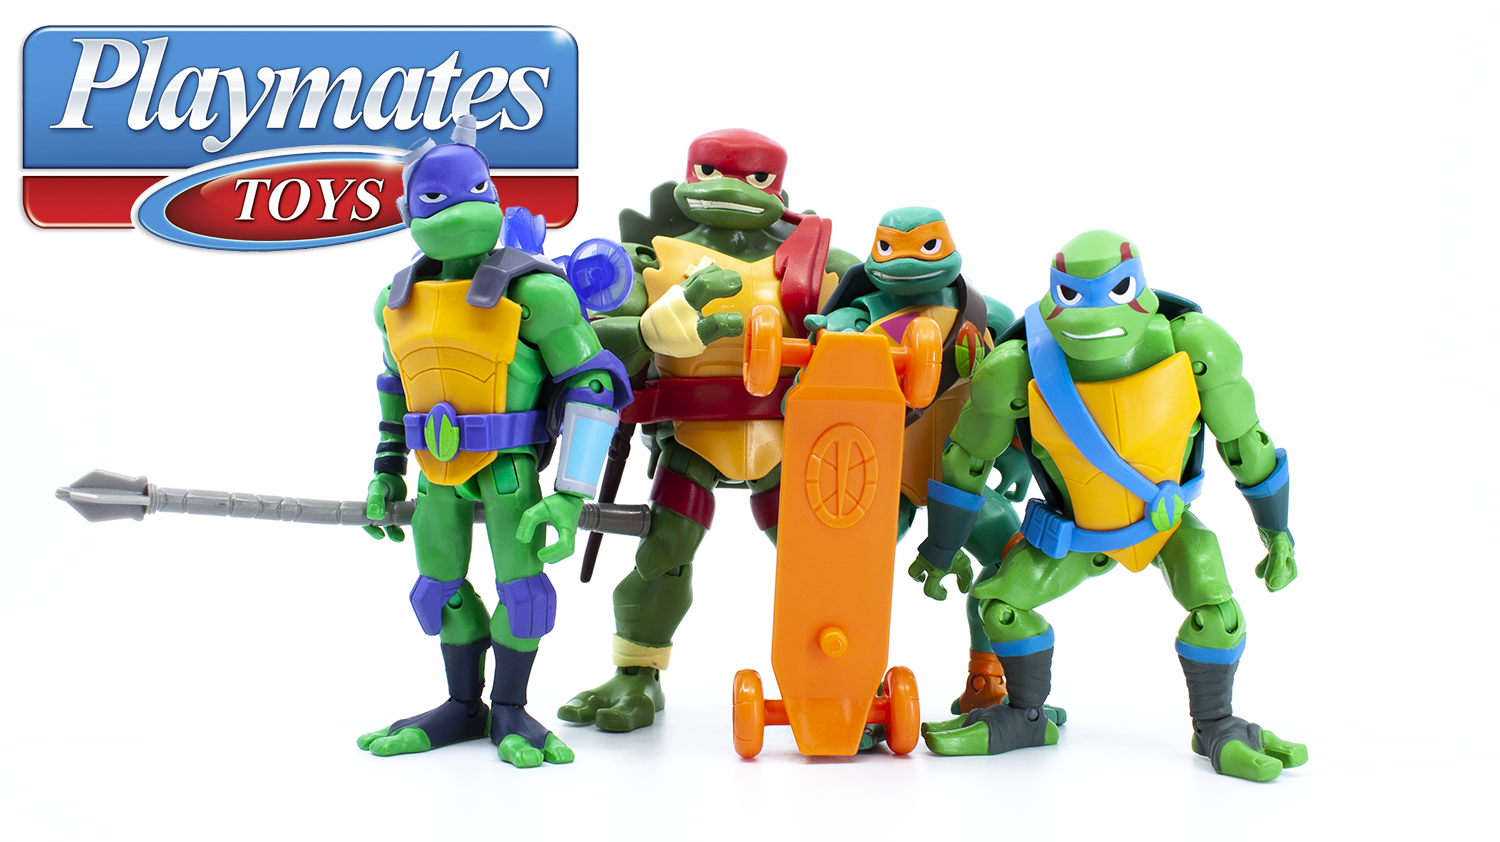 Playmates Rise of the Teenage Mutant Ninja Turtles Review